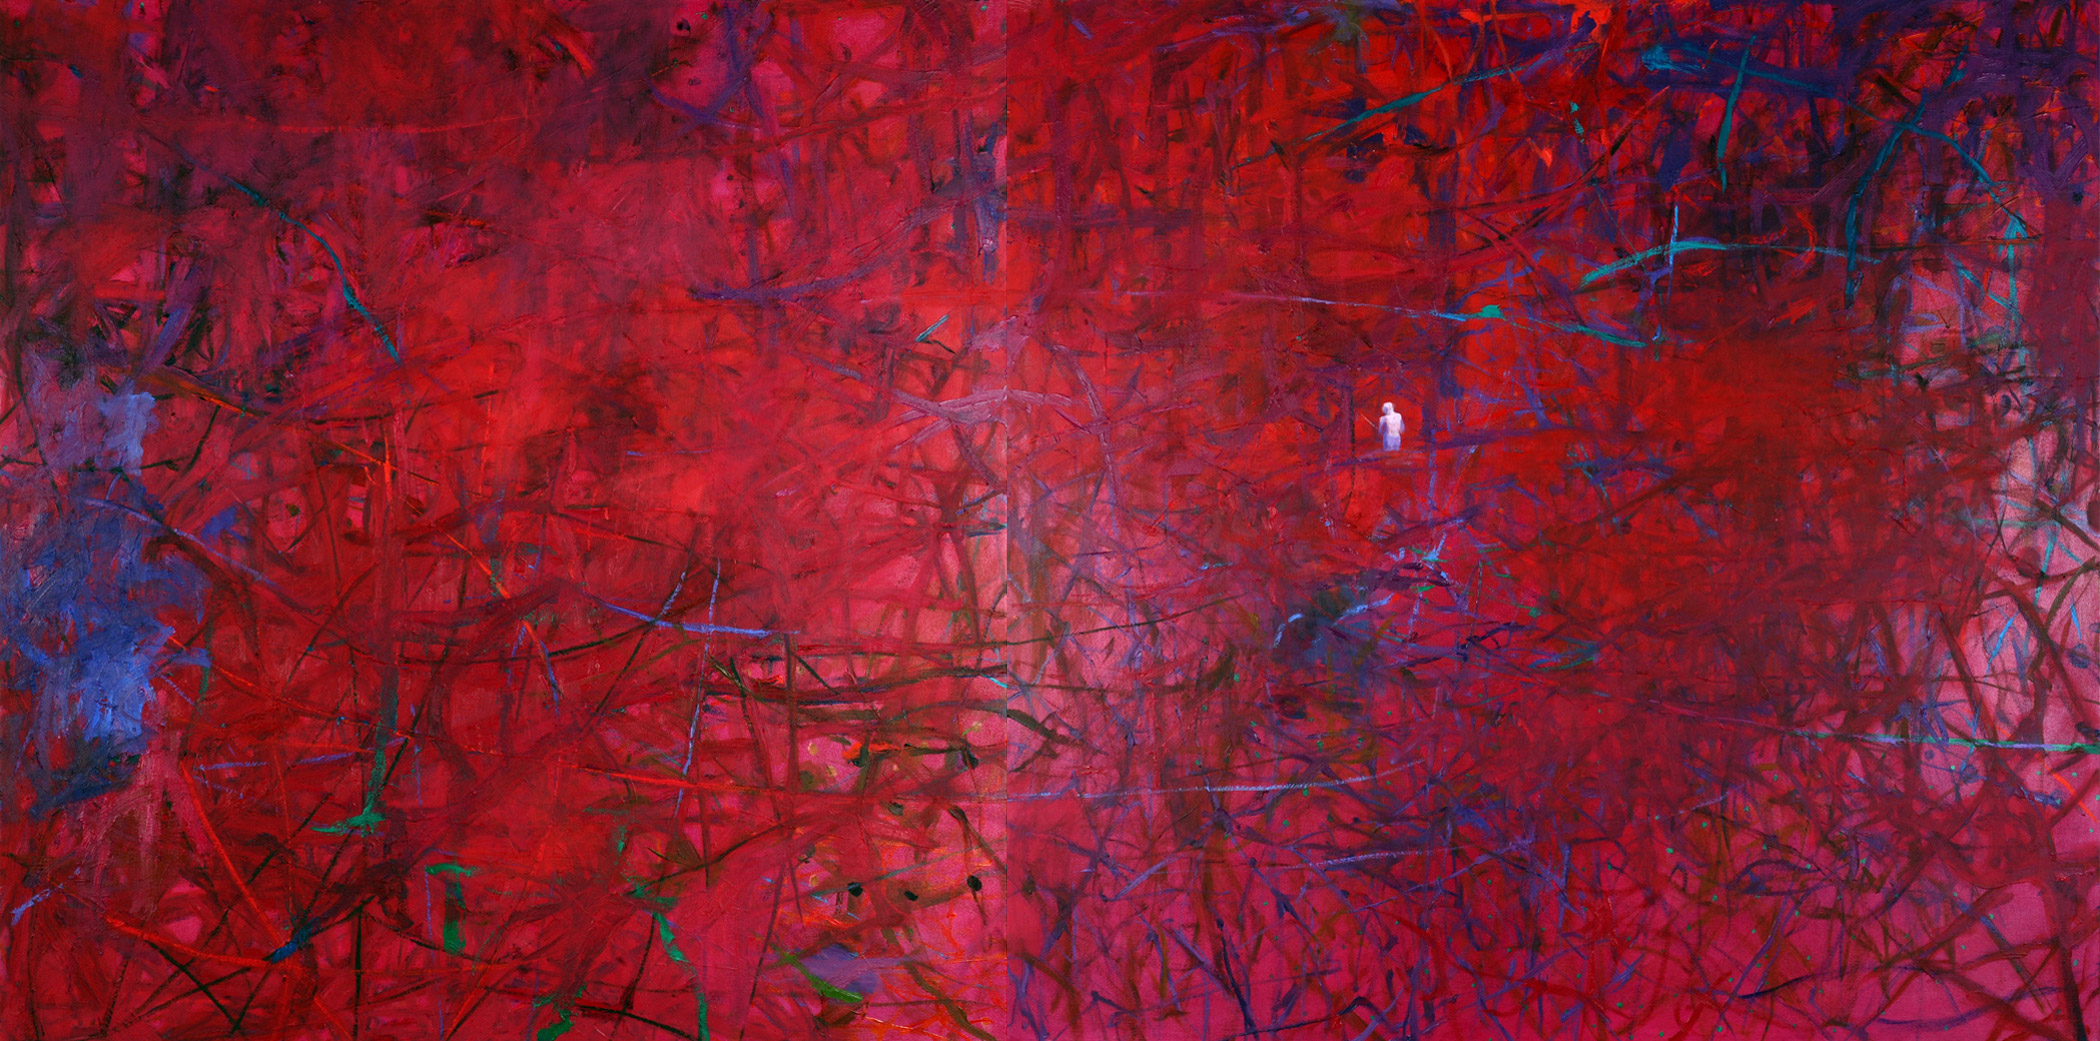 Deep Rose (diptych)  Left panel: 50 × 48 inches 127 × 122 cm Right panel: 50 x 52 inches 127 × 132 cm Complete diptych: 100 inches 254 cm wide Oil on canvas 2007OK